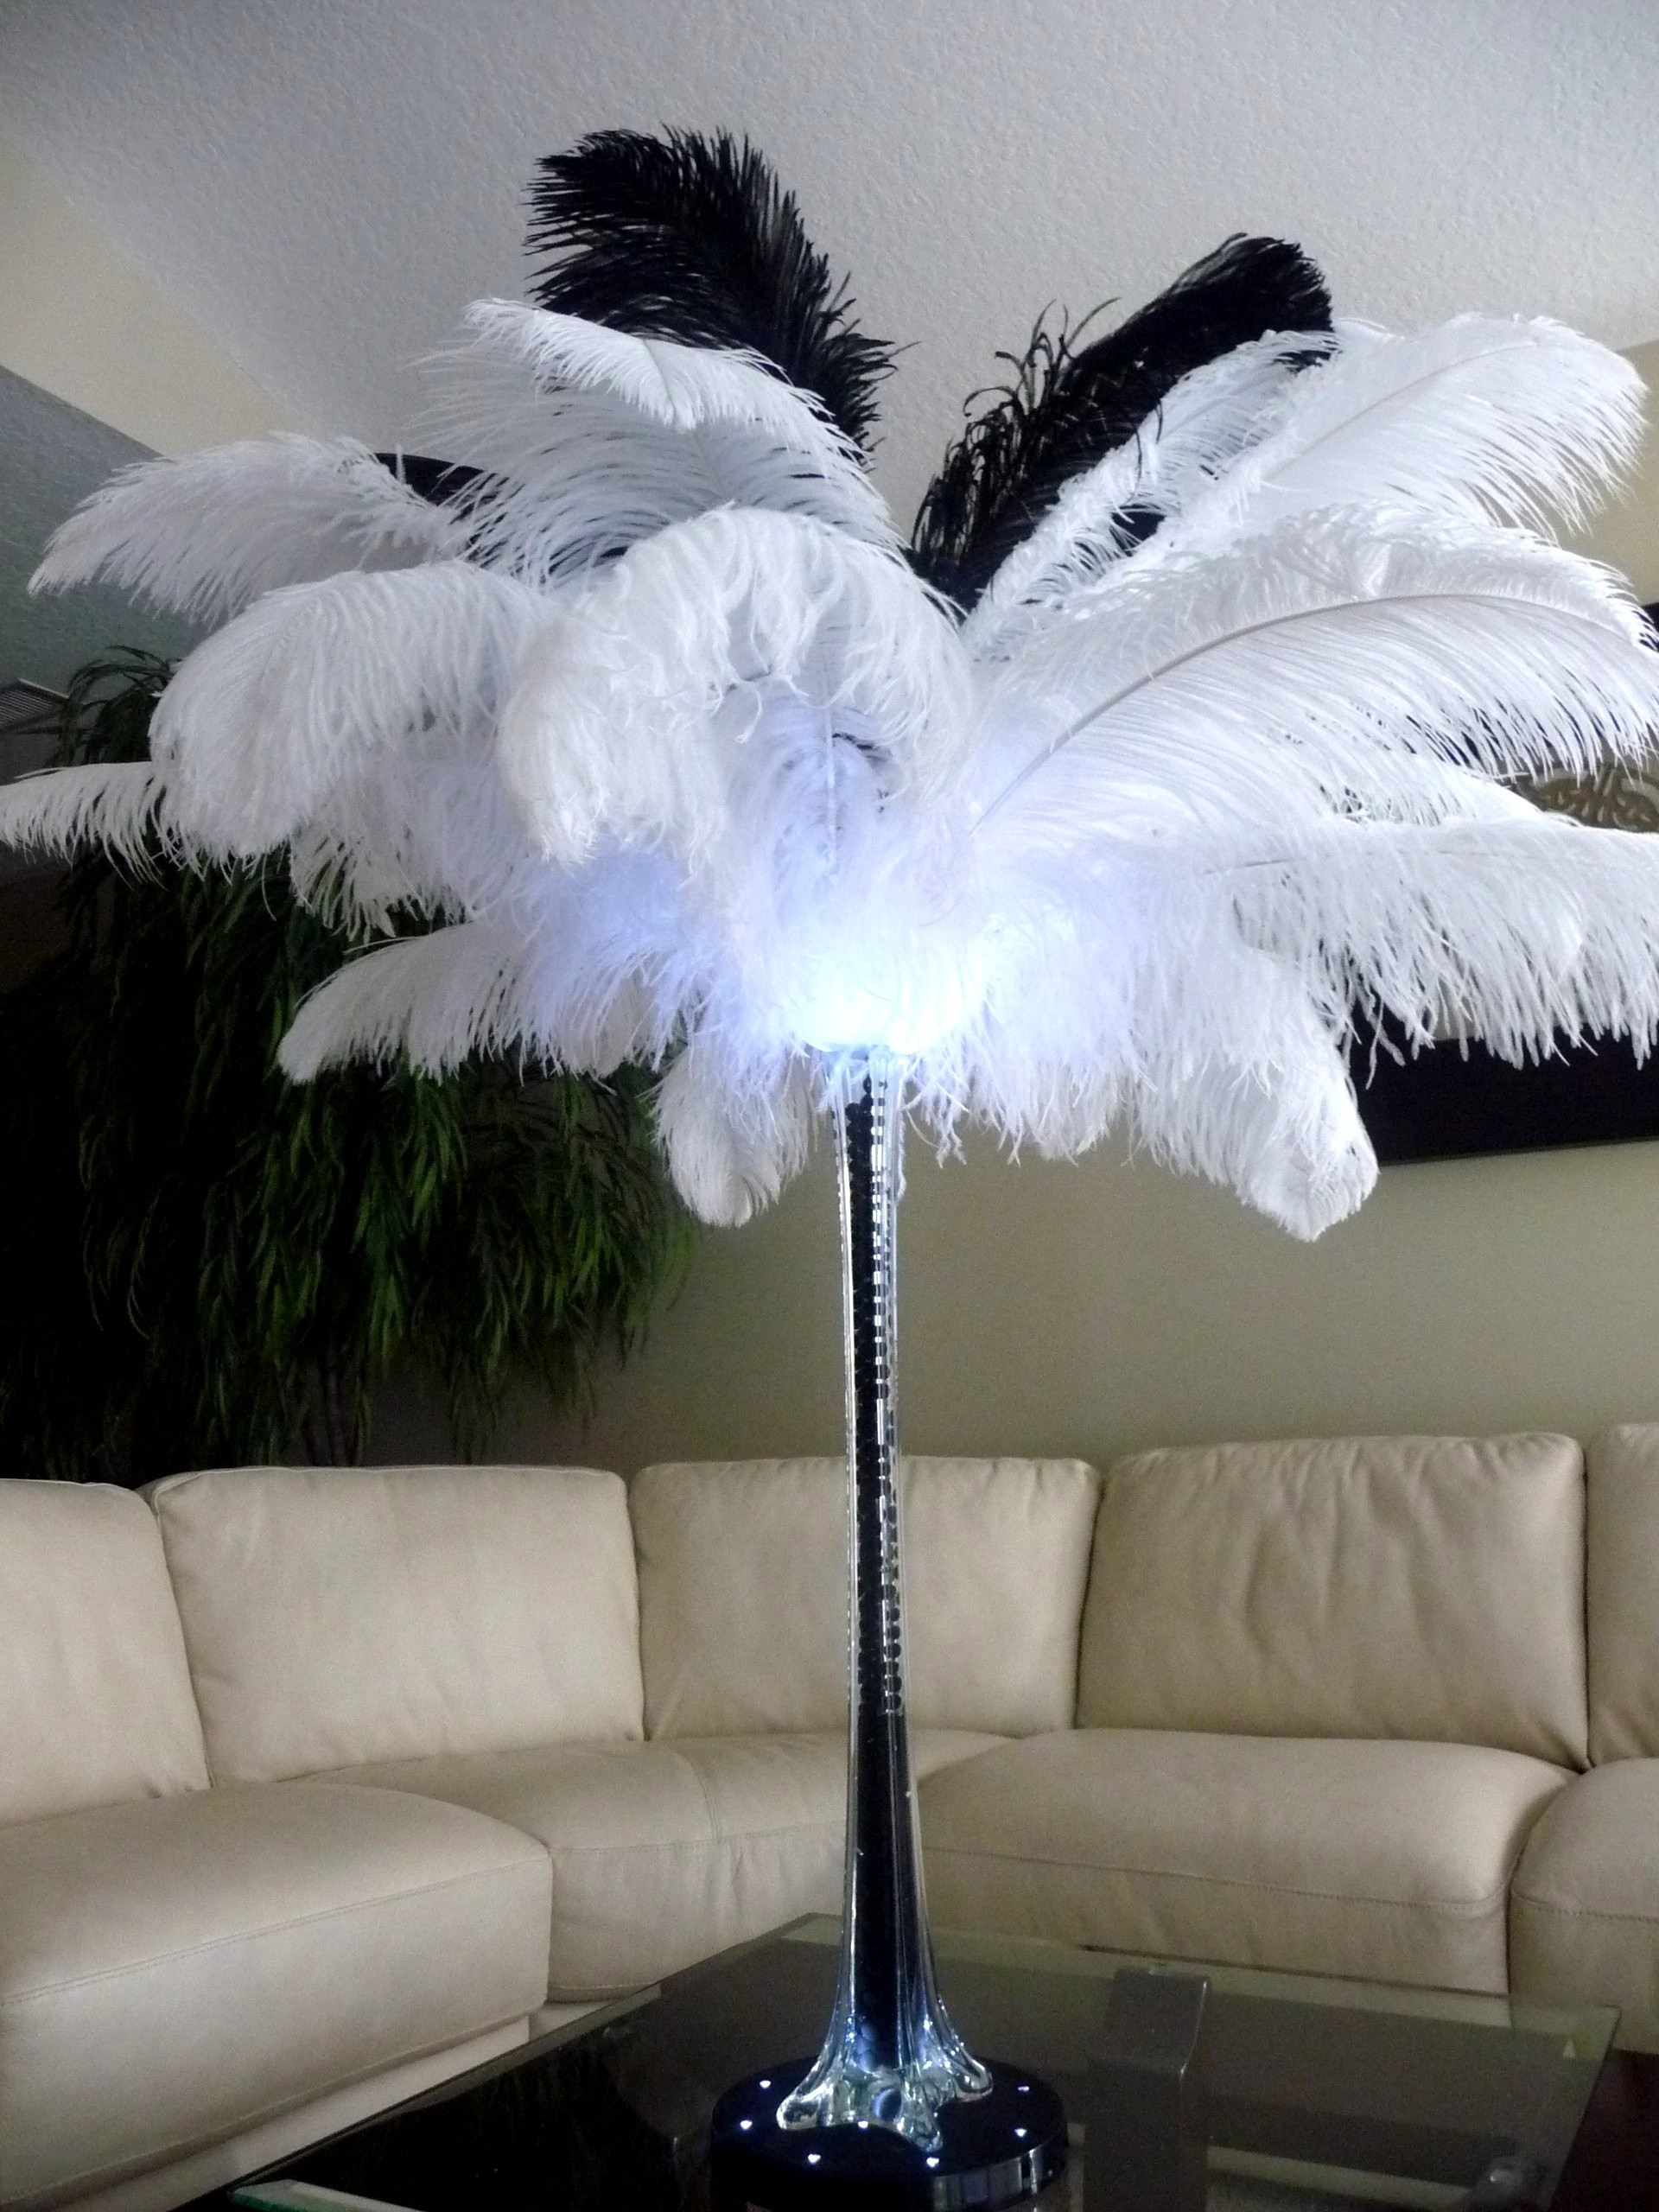 Beauty, Ceremony, Inspiration, Reception, Flowers & Decor, white, black, Feathers, Ceremony Flowers, Centerpieces, Flowers, Board, Ostrich, Savannah event decor